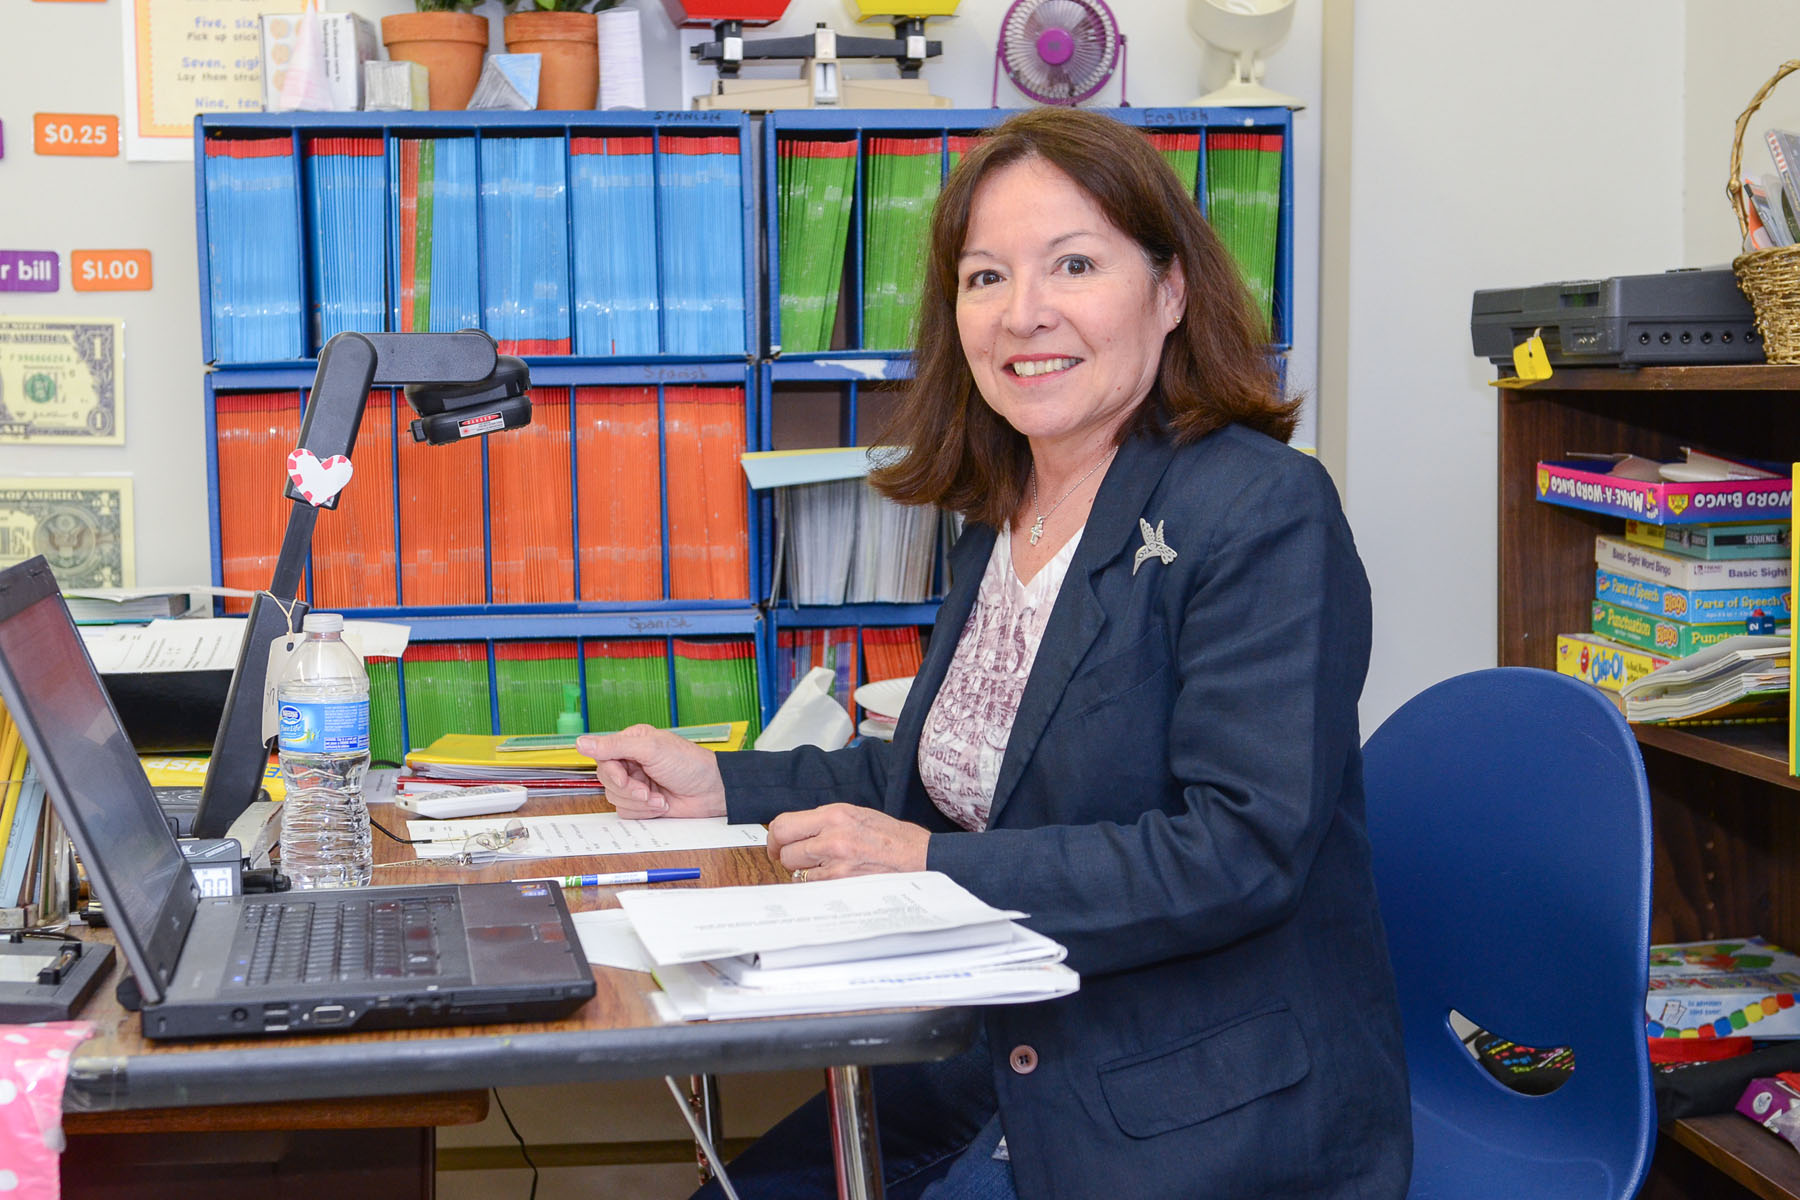 Person of the Week: Shimotsu shares enthusiasm for education